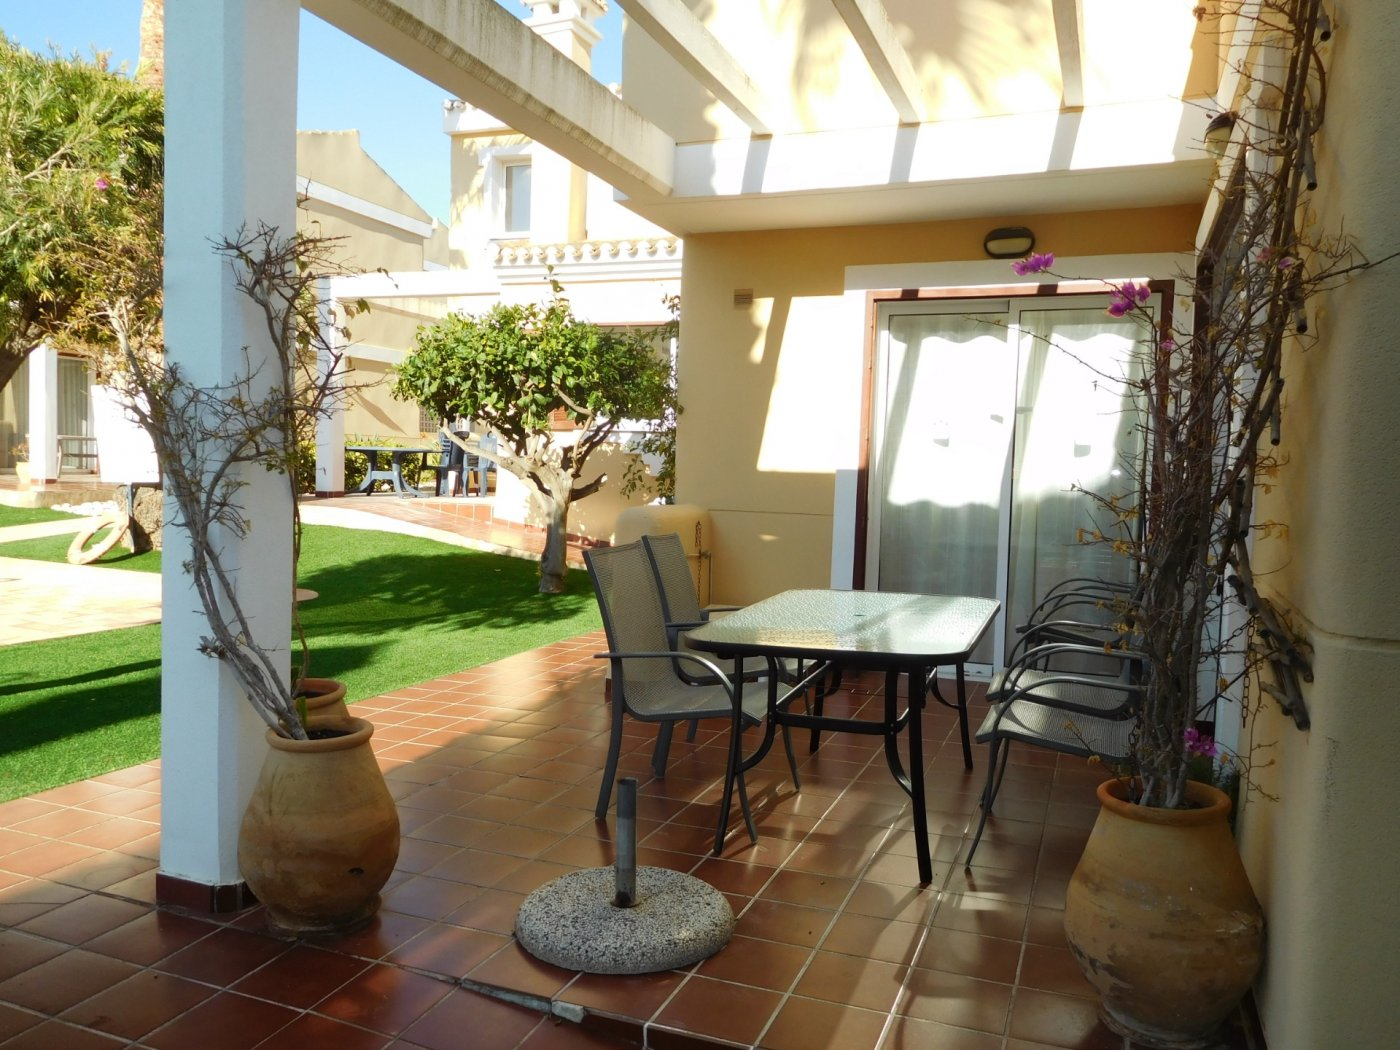 Gallery Image 13 of Casa For rent in Los Naranjos, La Manga Club With Pool